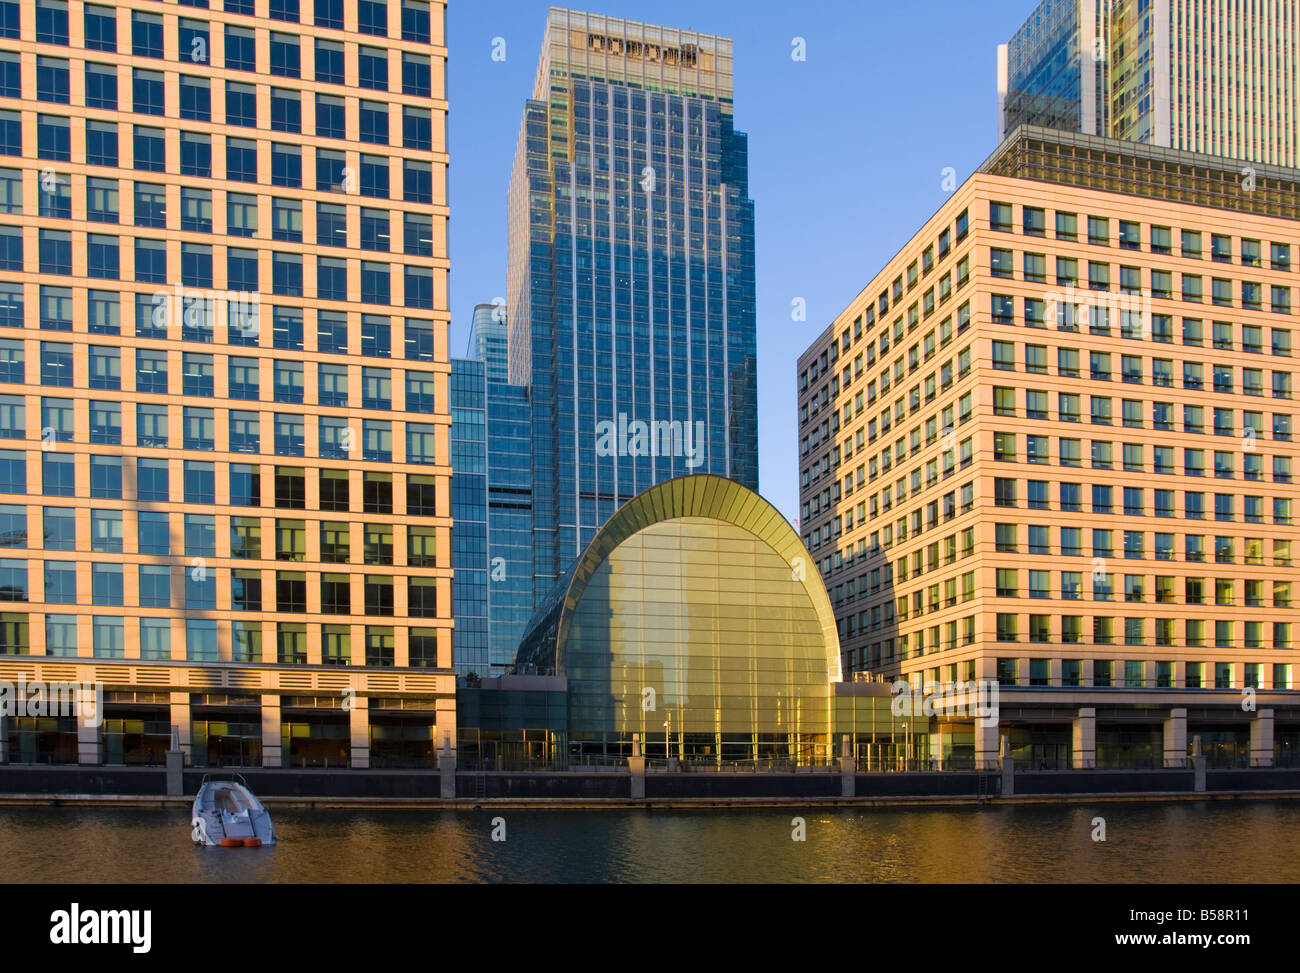 Sunken boat at Canary Wharf with 25 Canada Square (Citigroup Centre) in background minus it's corporate logo. - Stock Image